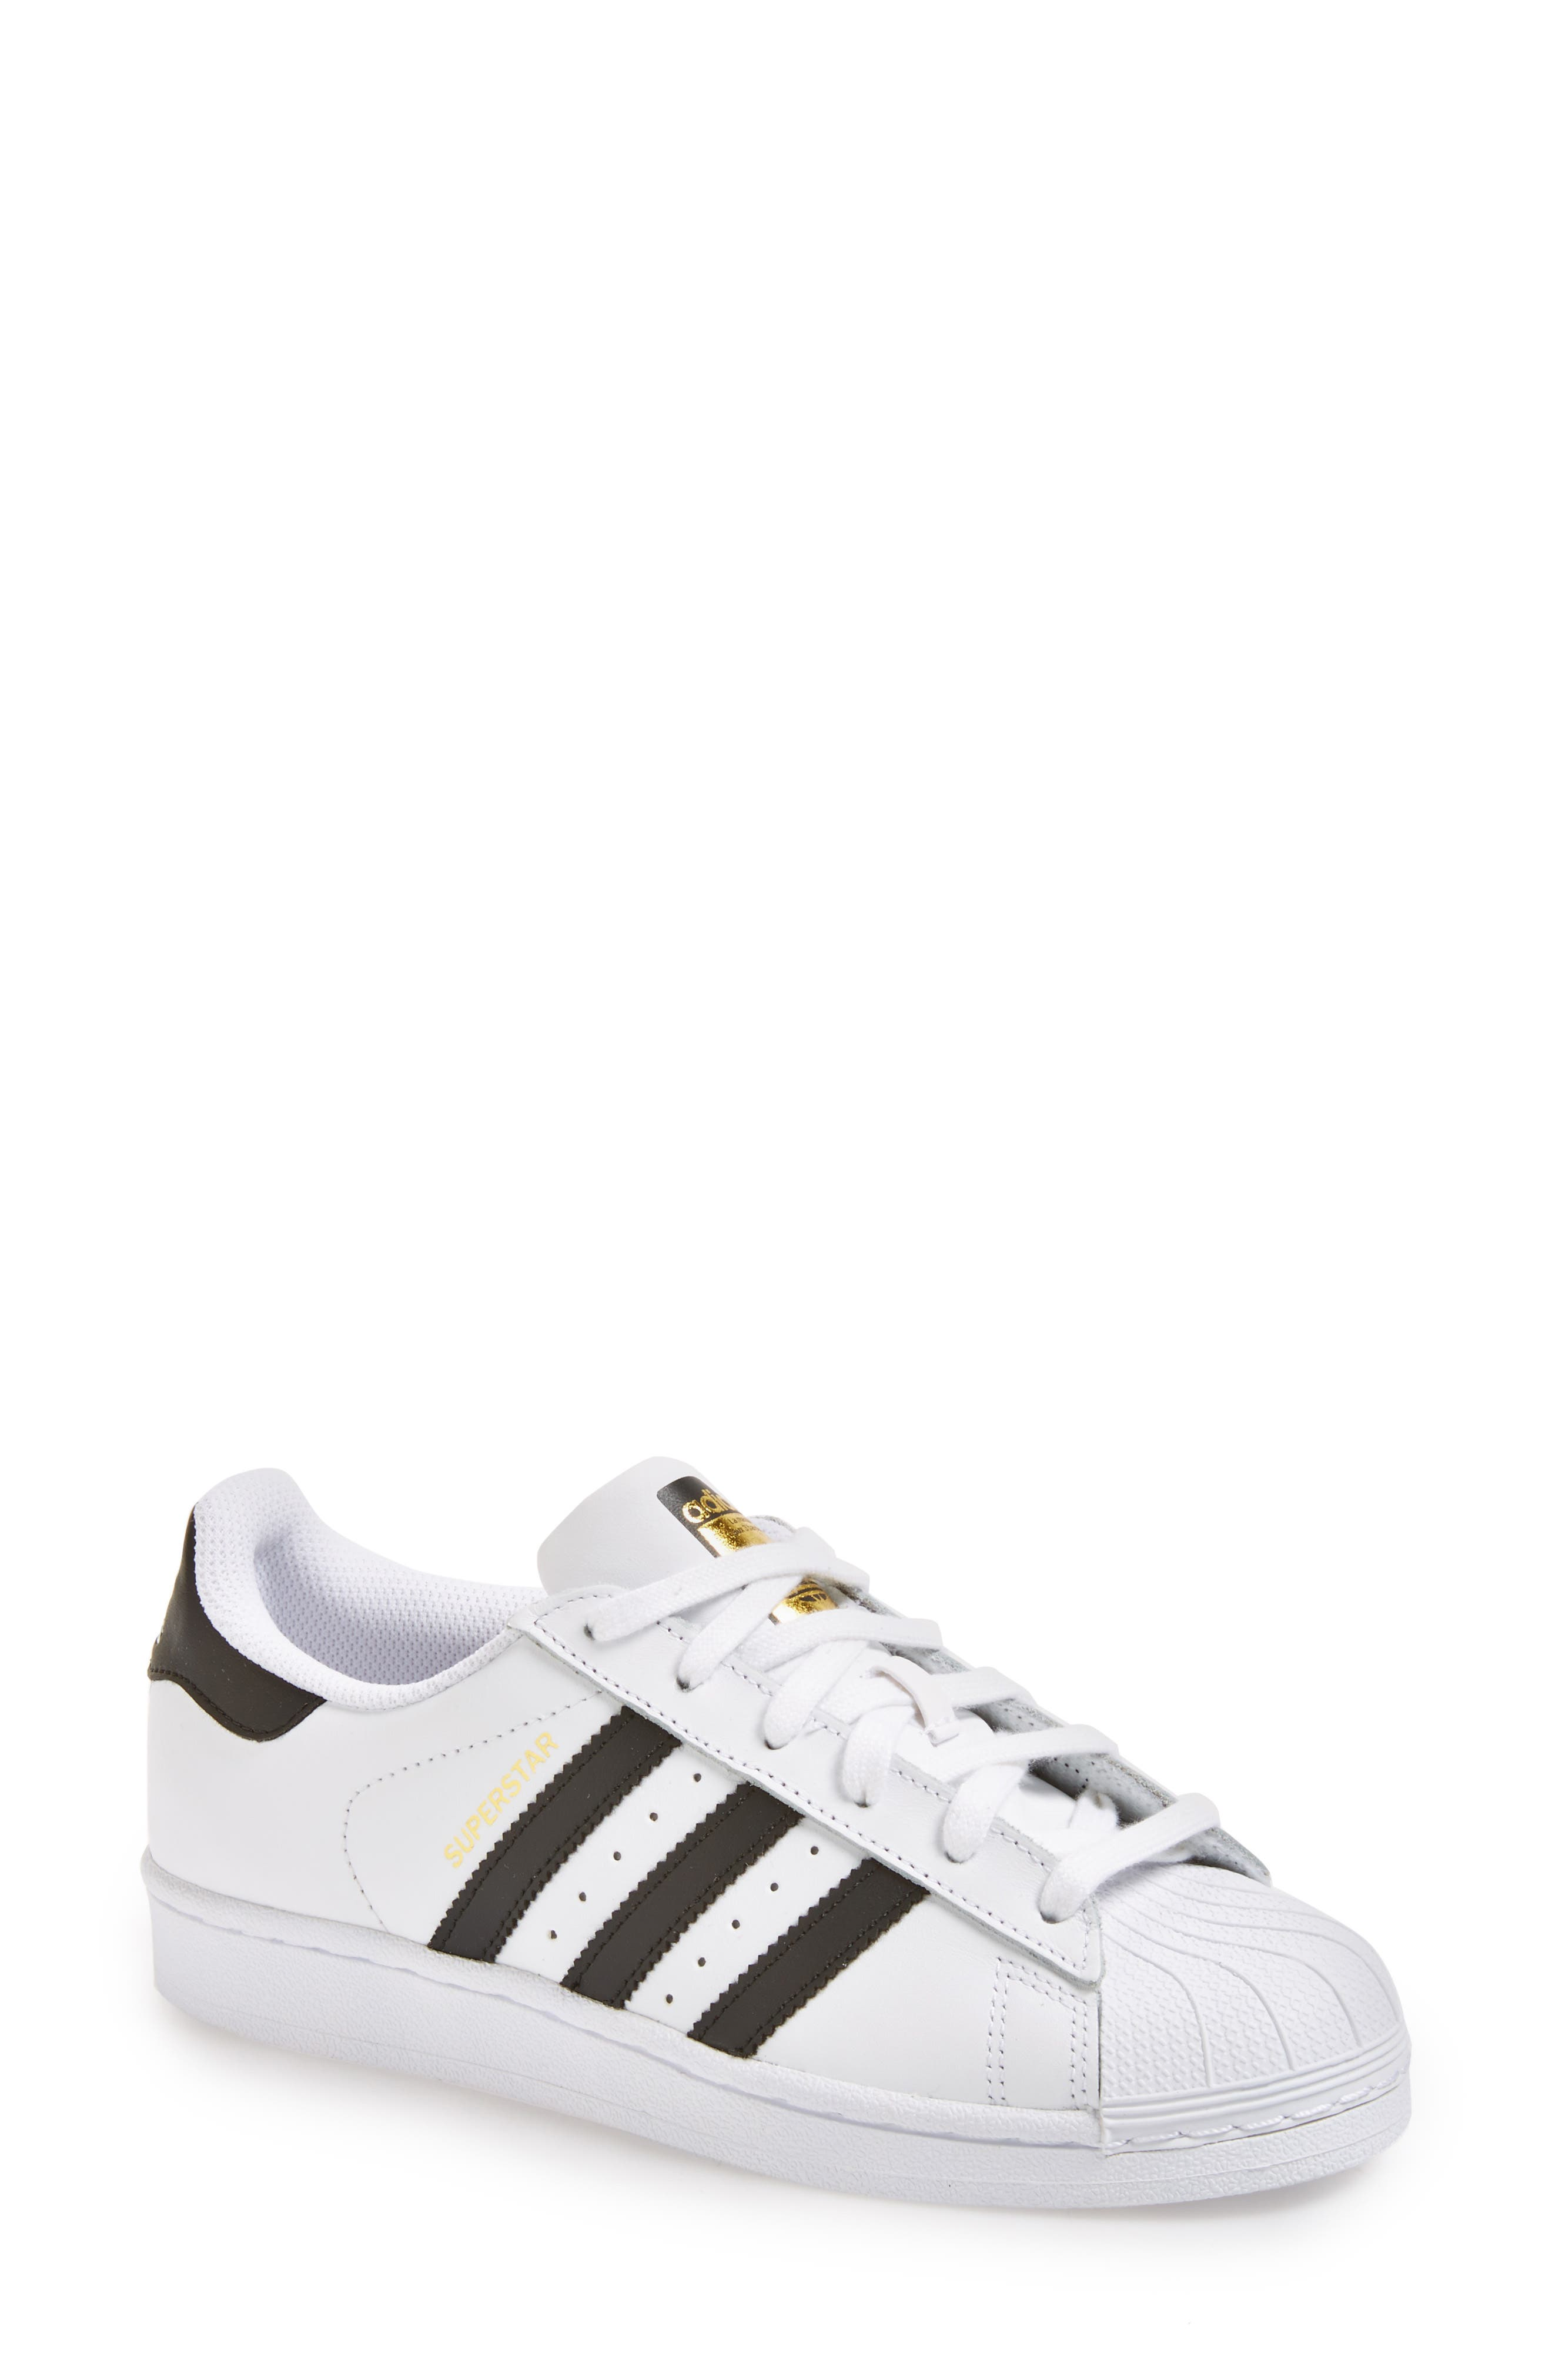 ADIDAS, Superstar Sneaker, Main thumbnail 1, color, WHITE/ BLACK